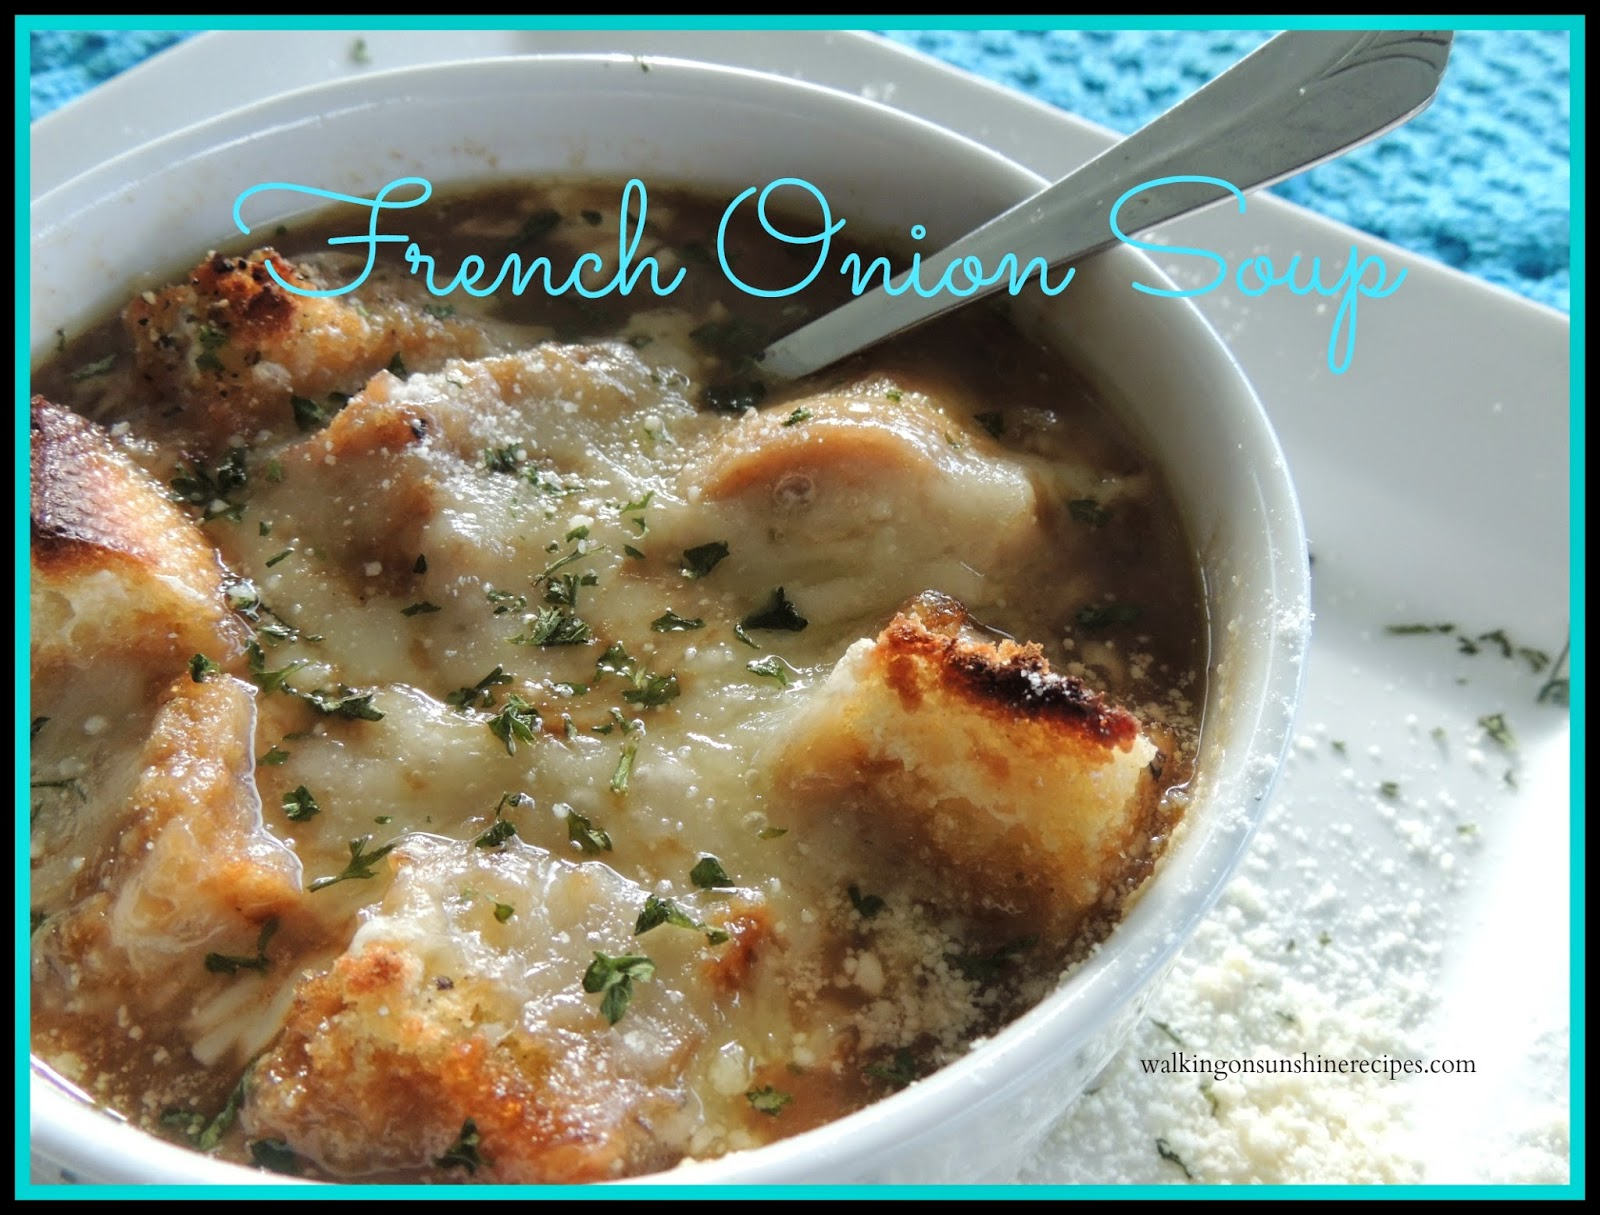 An easy and delicious recipe for French Onion Soup that will make you wonder why you only have it when you're eating in a restaurant.  The recipe is easy and it freezes well for leftovers from Walking on Sunshine Recipes.